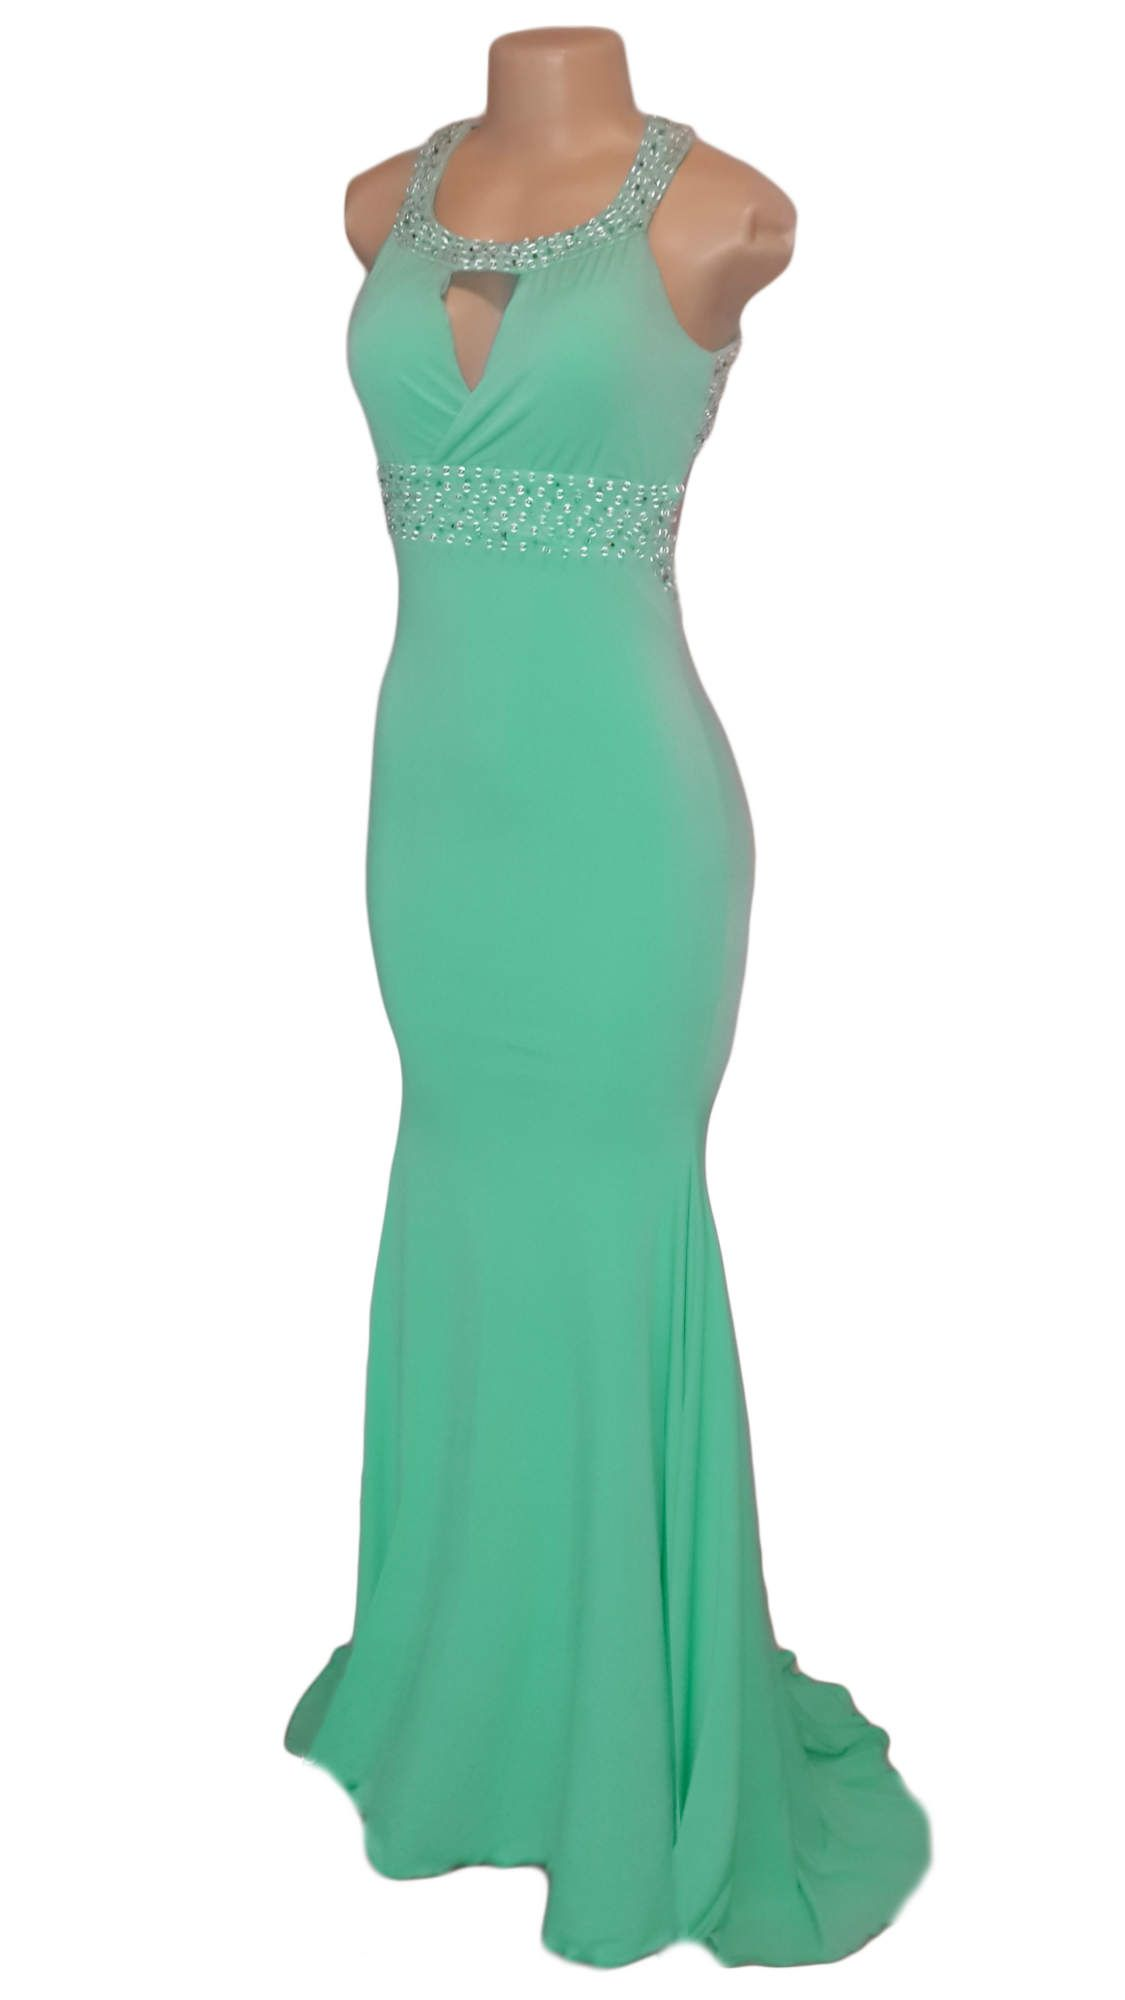 Buy Now - Beaded mint green soft mermaid matric farewell dress ...